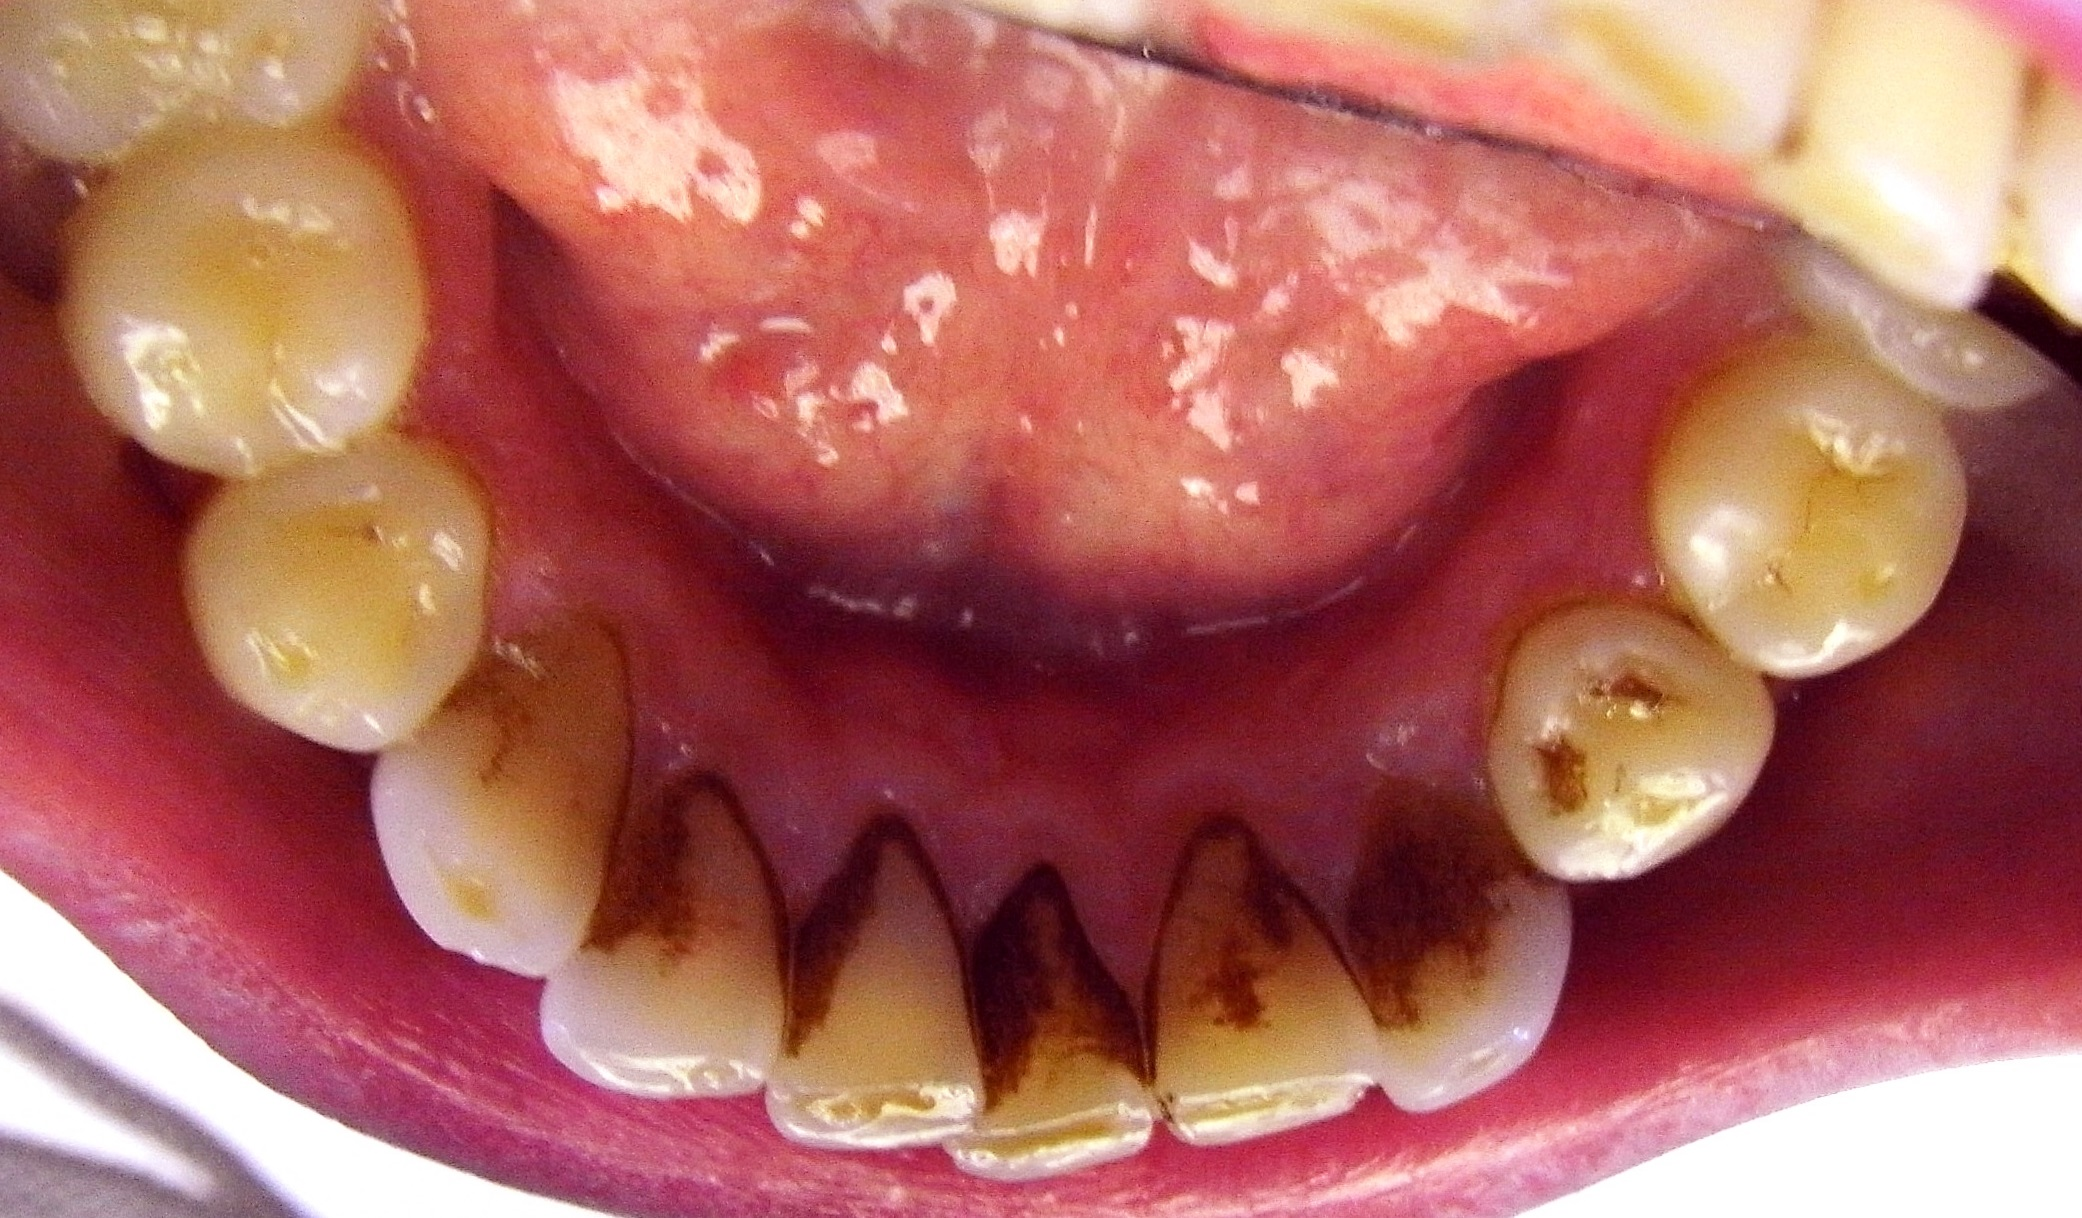 Gross Staining on Lower Front Teeth